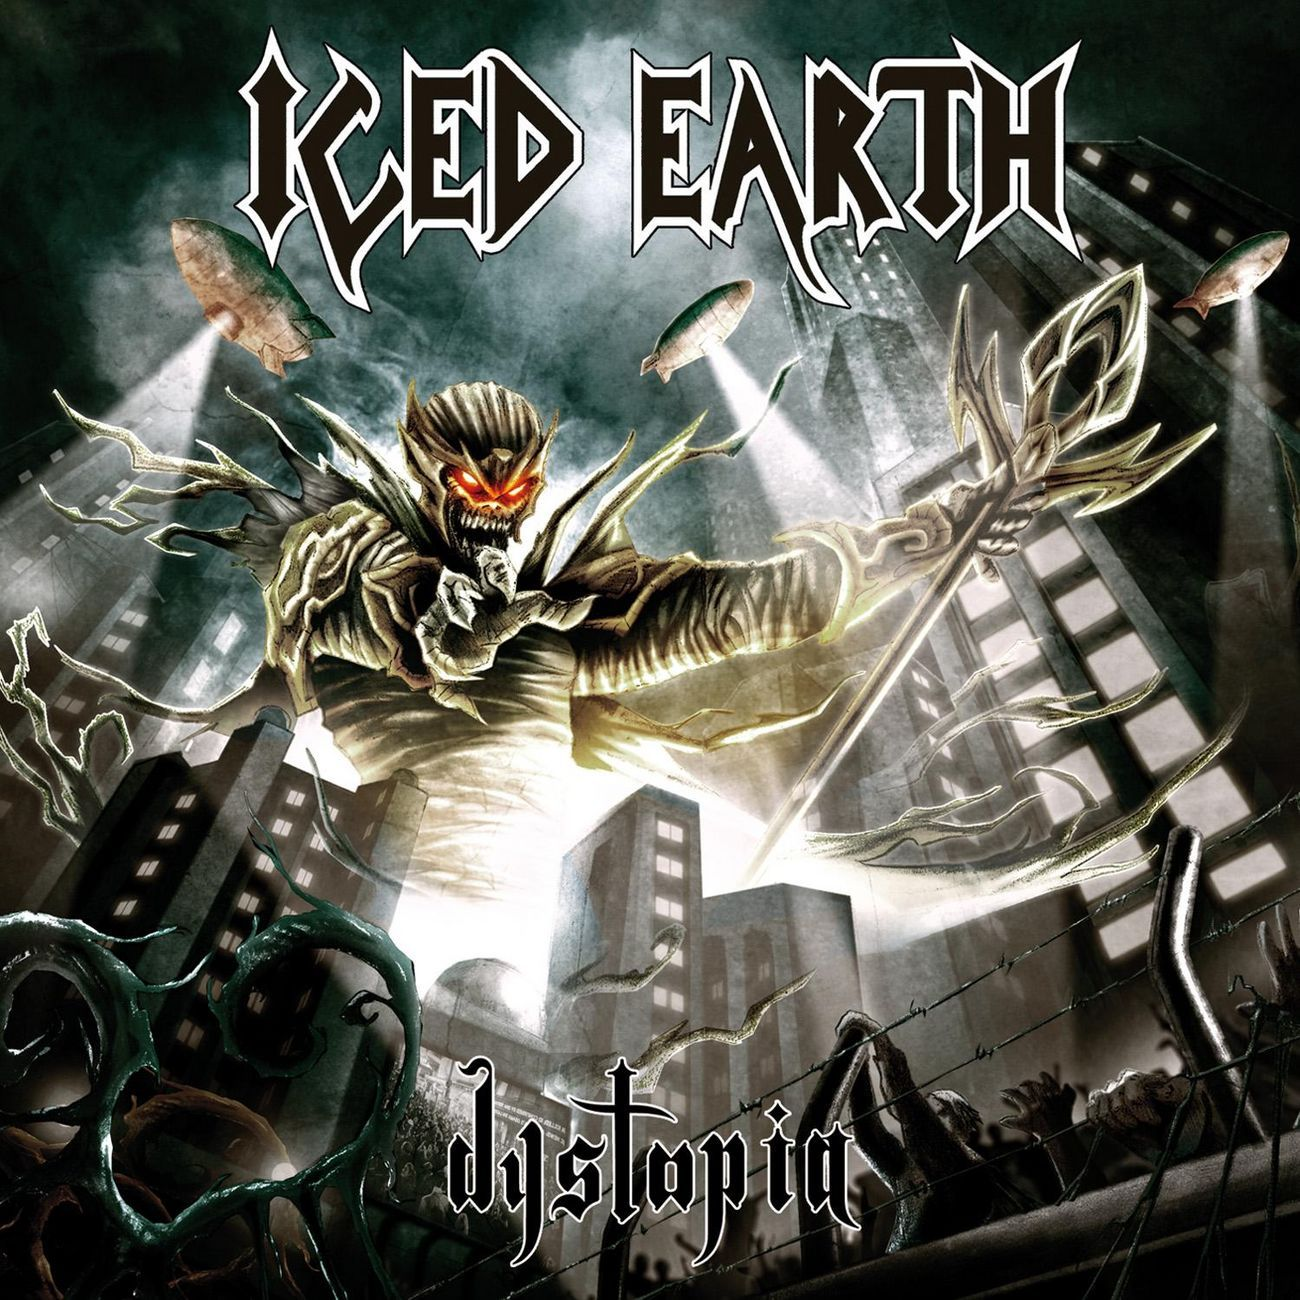 Iced Earth - Dystopia album cover